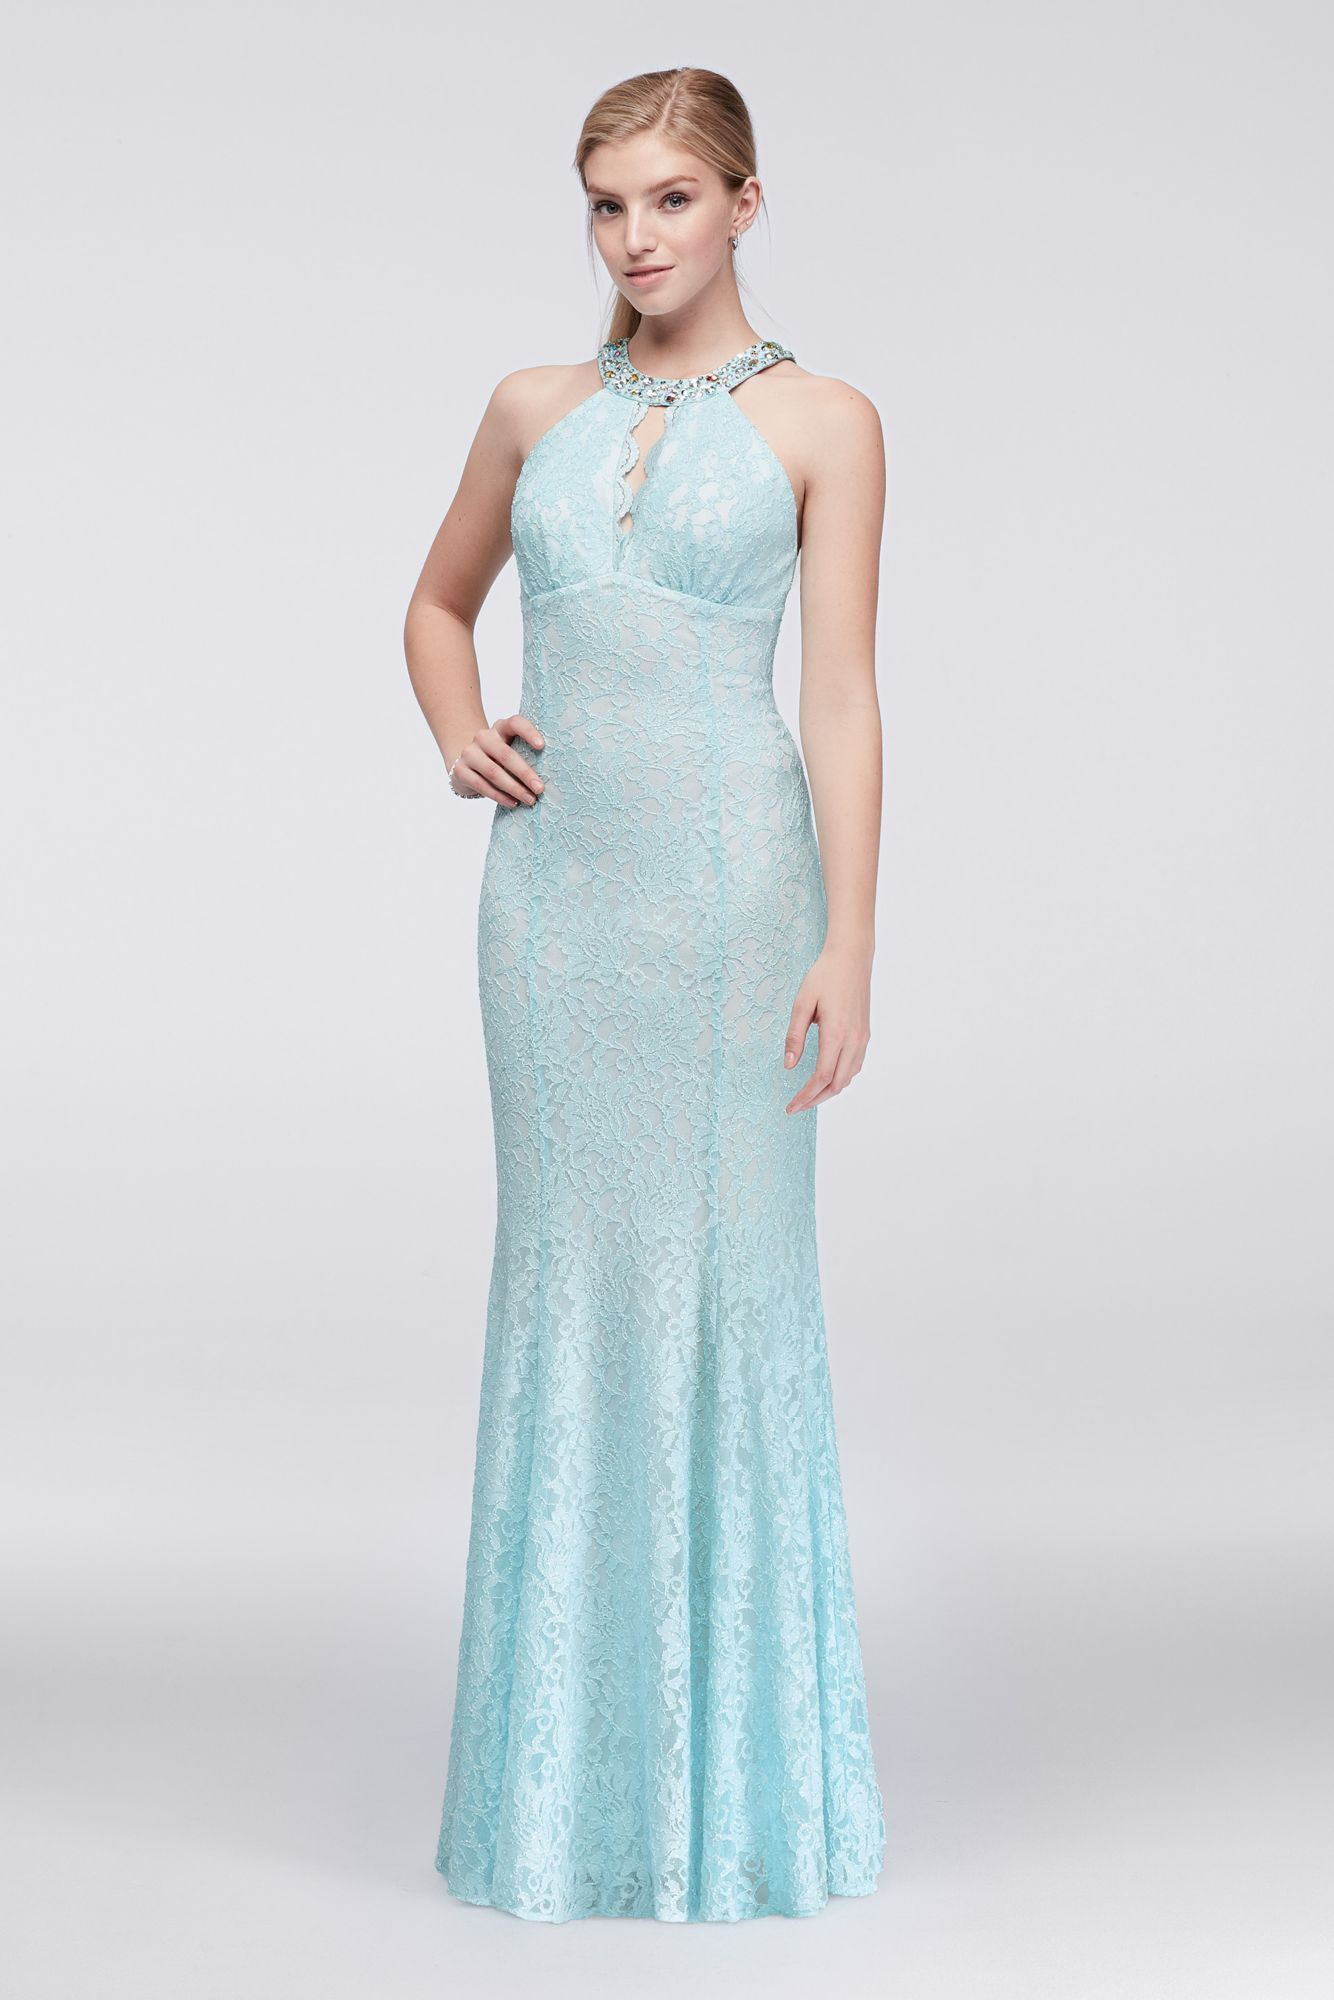 Beaded keyhole halter neck long all over lace prom dress style